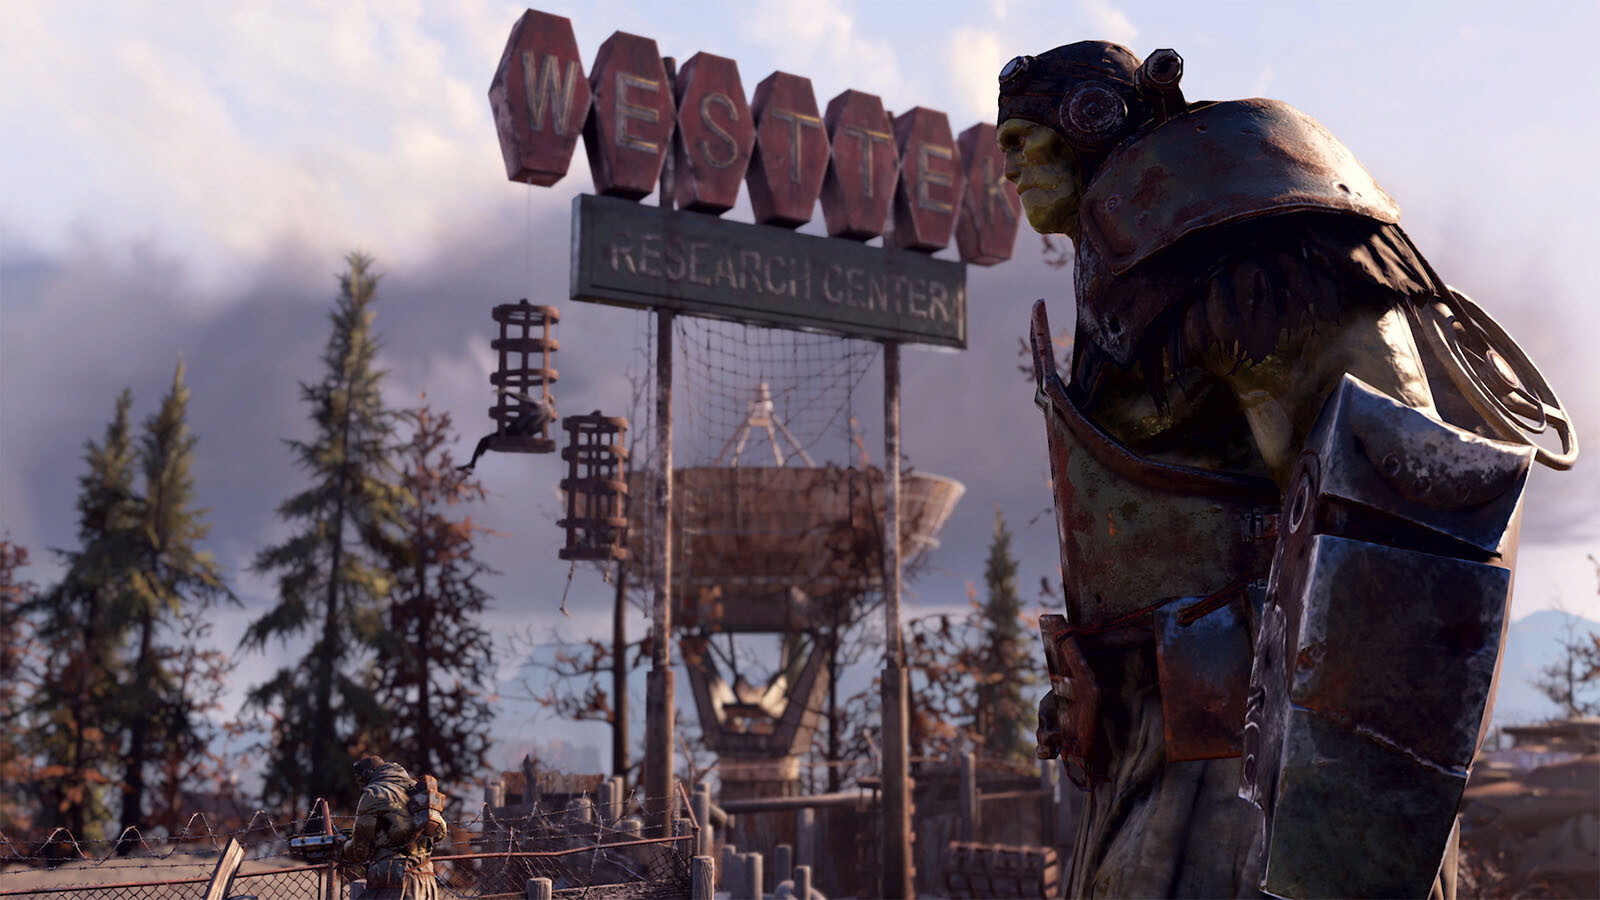 Fallout 76 [Bethesda CD Key] for PC - Buy now